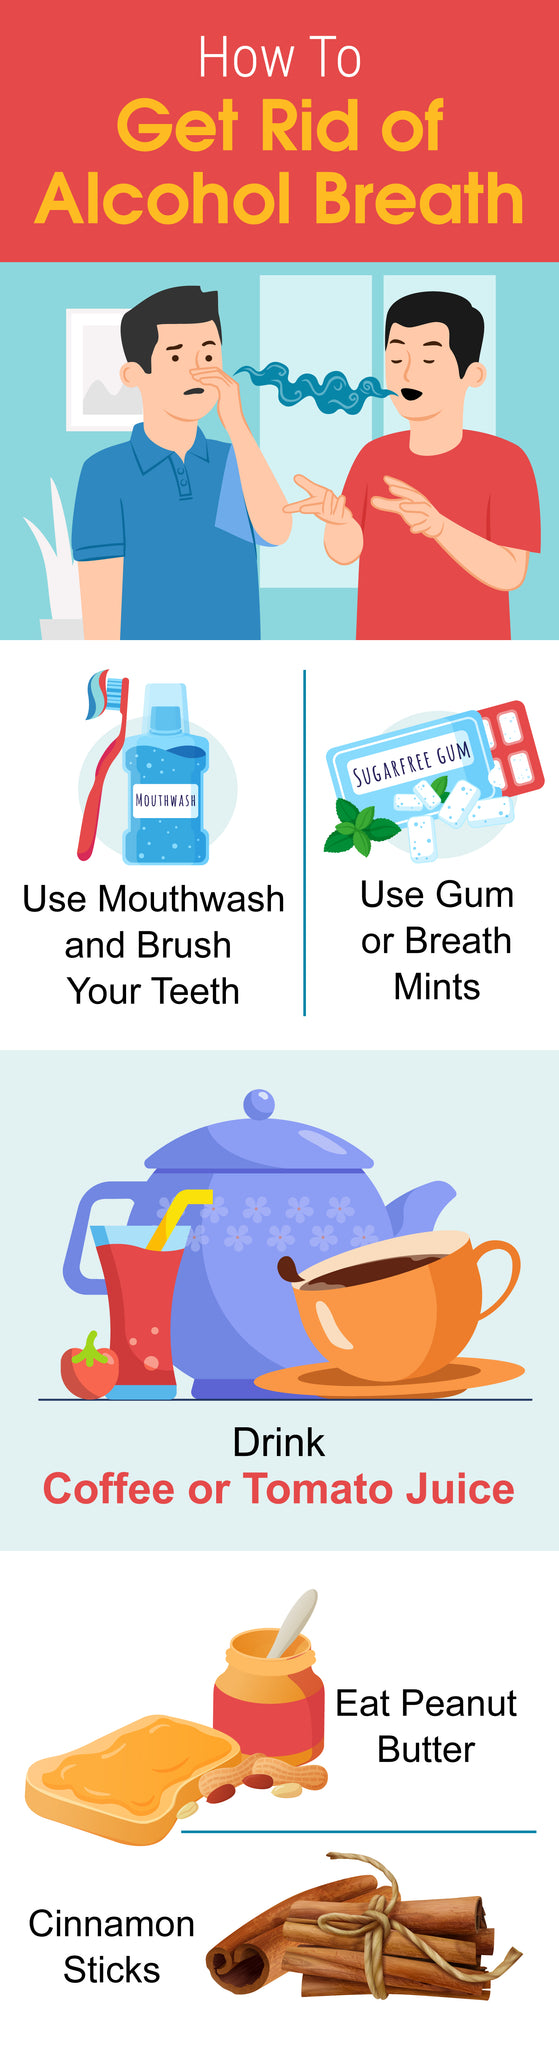 How to get rid of alcohol breath infographic